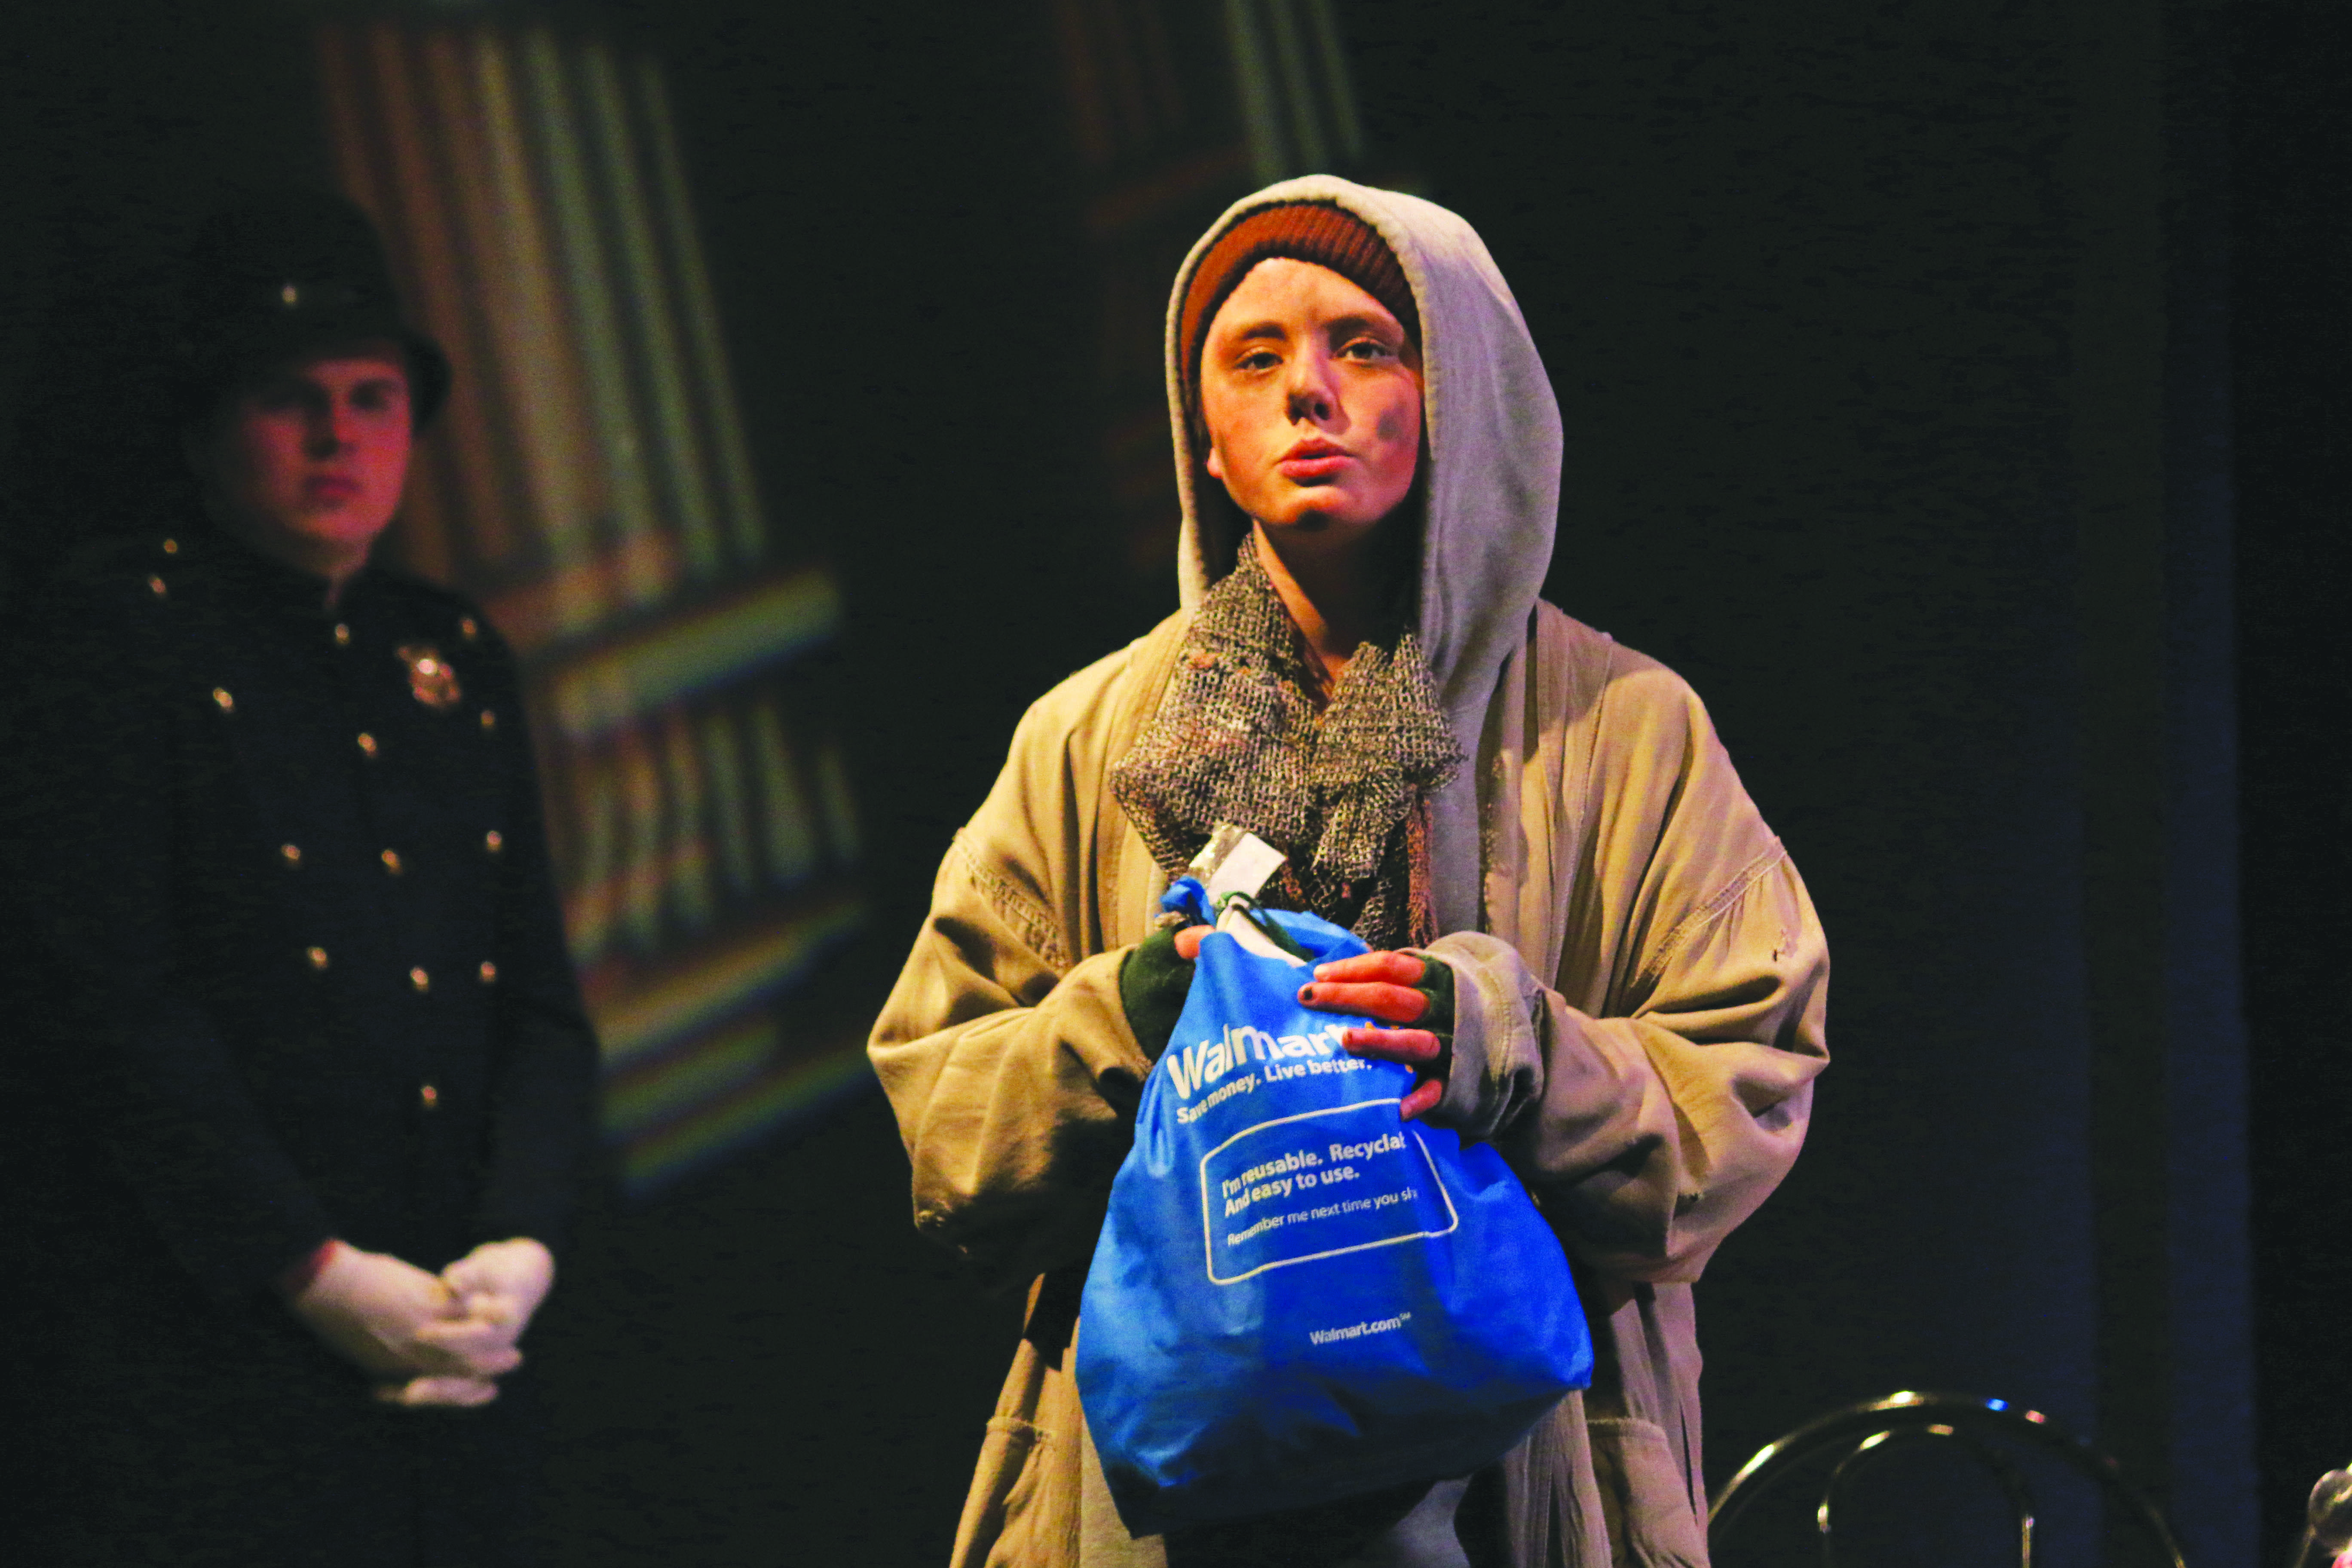 SETTING THE SCENE: Lily Beckinsale-Sheen '17, playing the role of the hobo, laments the state of the world. Credit: Pavan Tauh/Chronicle.